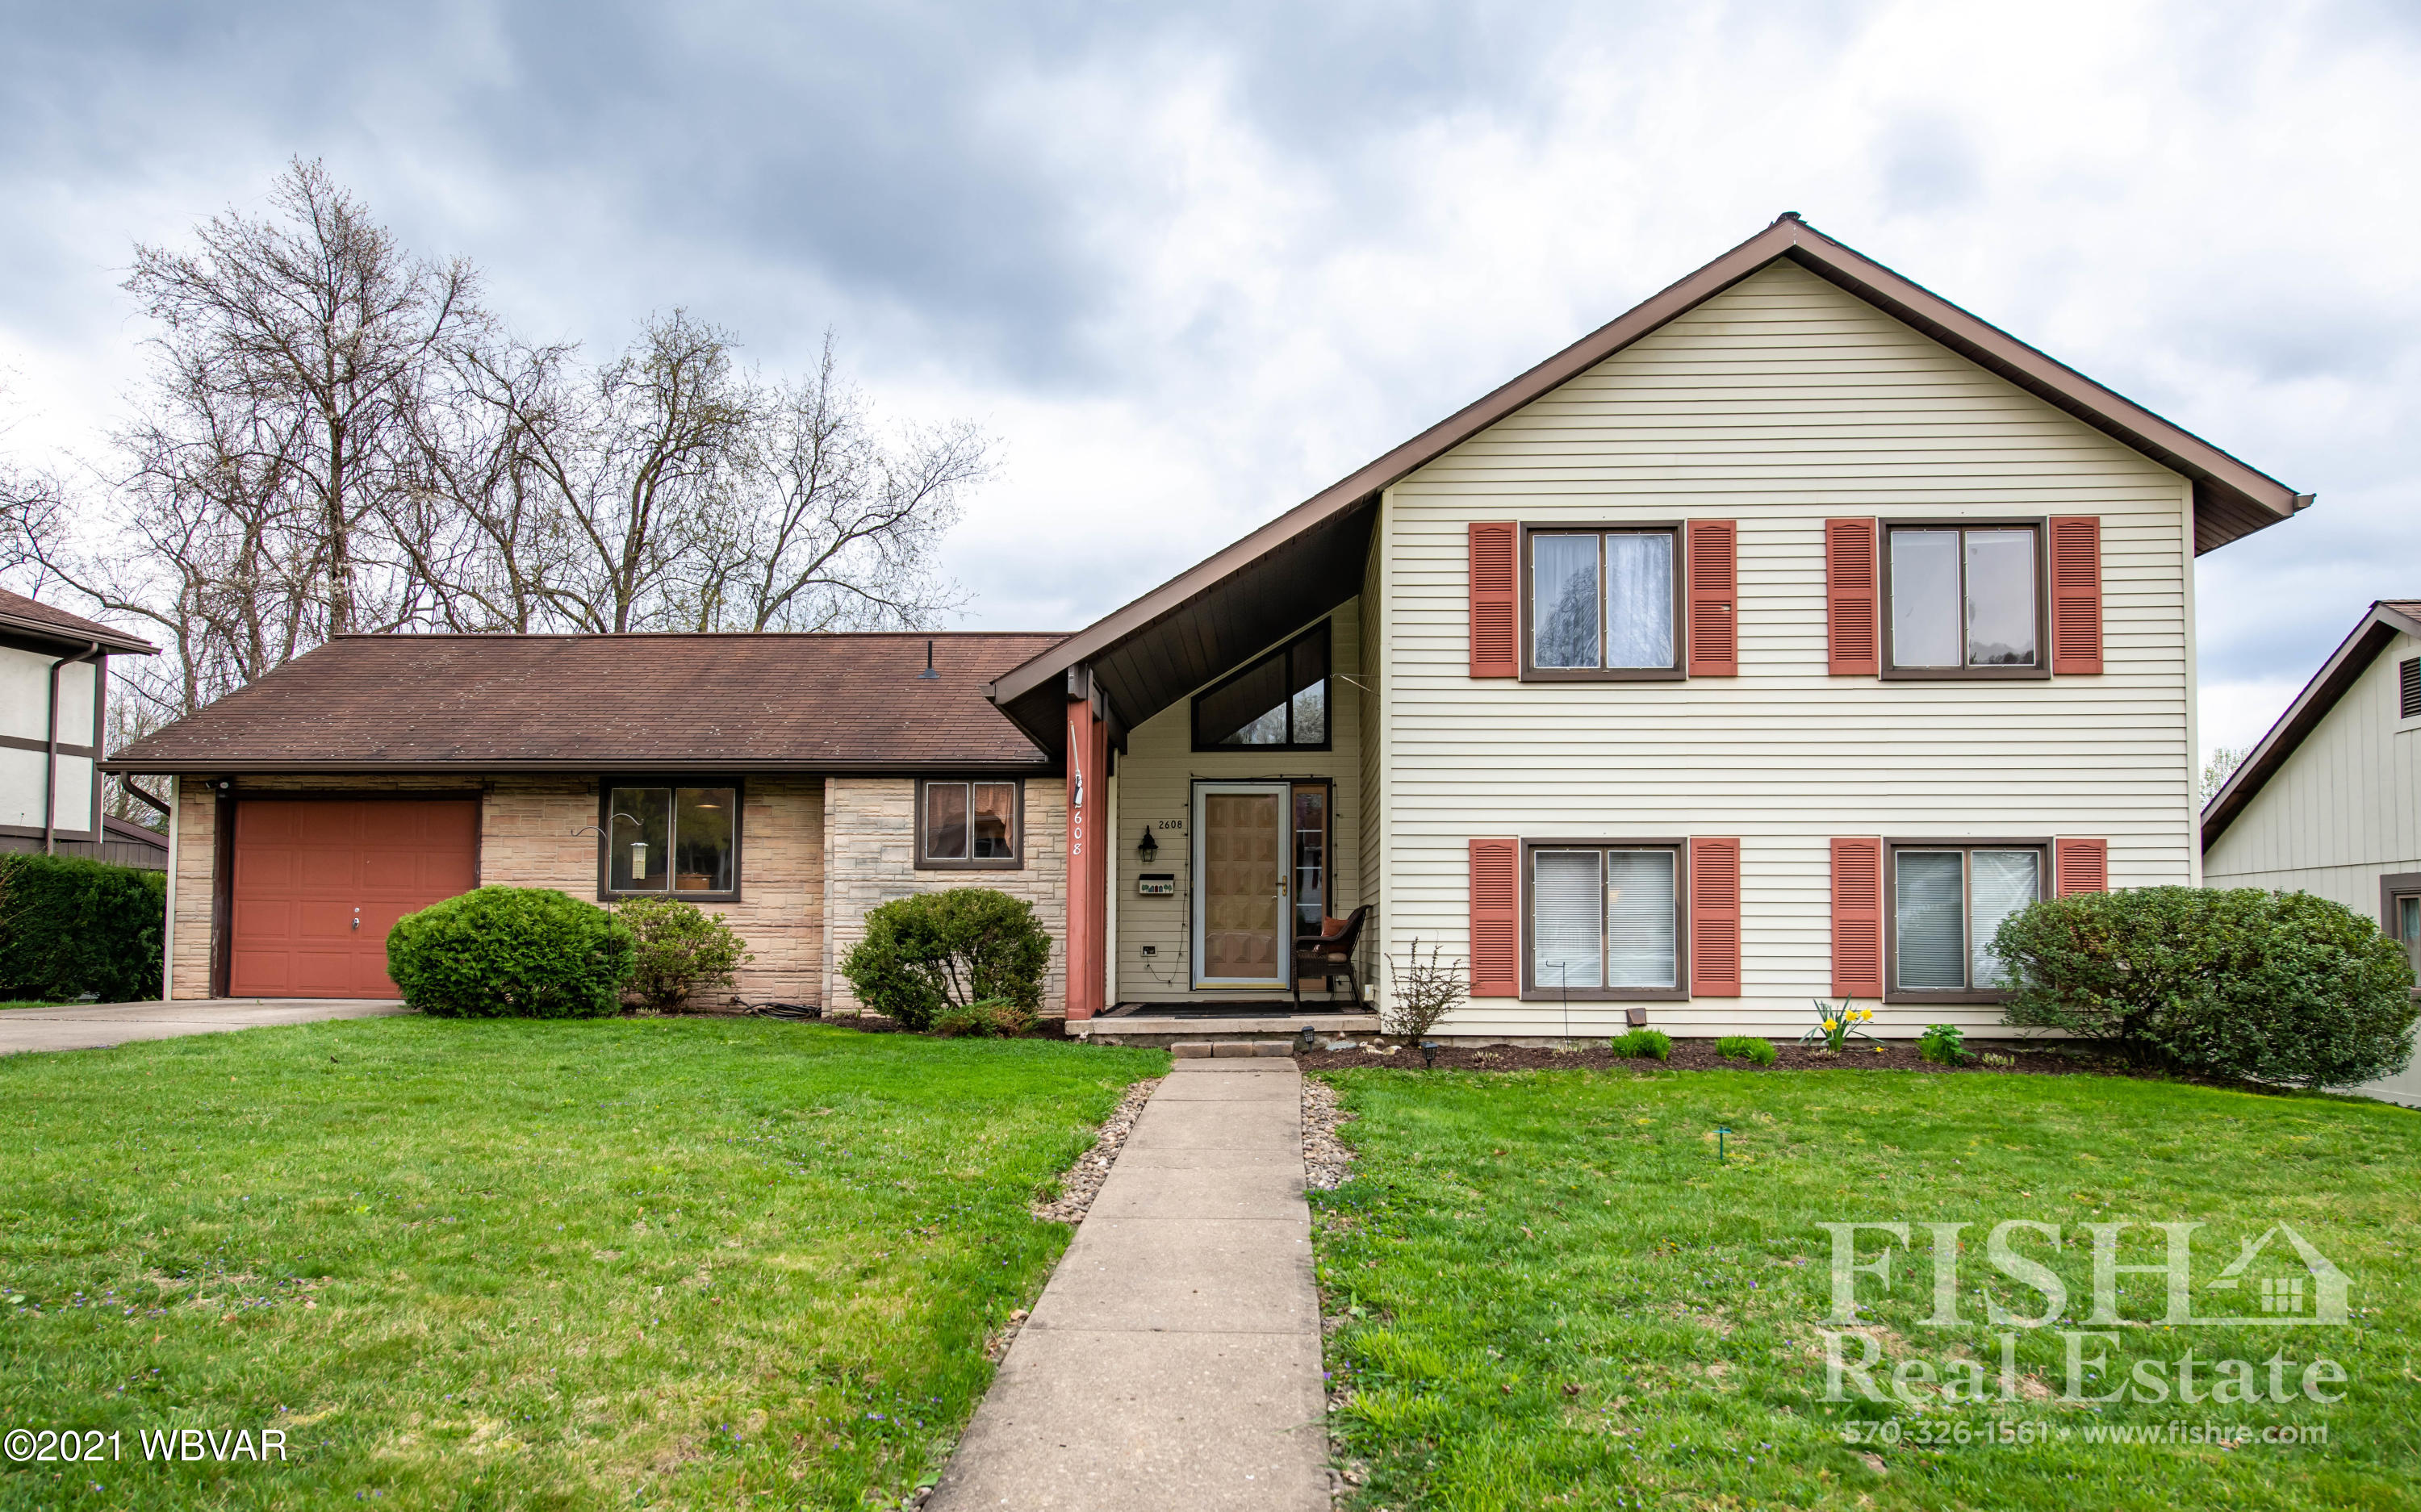 2608 HILLS DRIVE, Williamsport, PA 17701, 3 Bedrooms Bedrooms, ,2.5 BathroomsBathrooms,Residential,For sale,HILLS,WB-92333